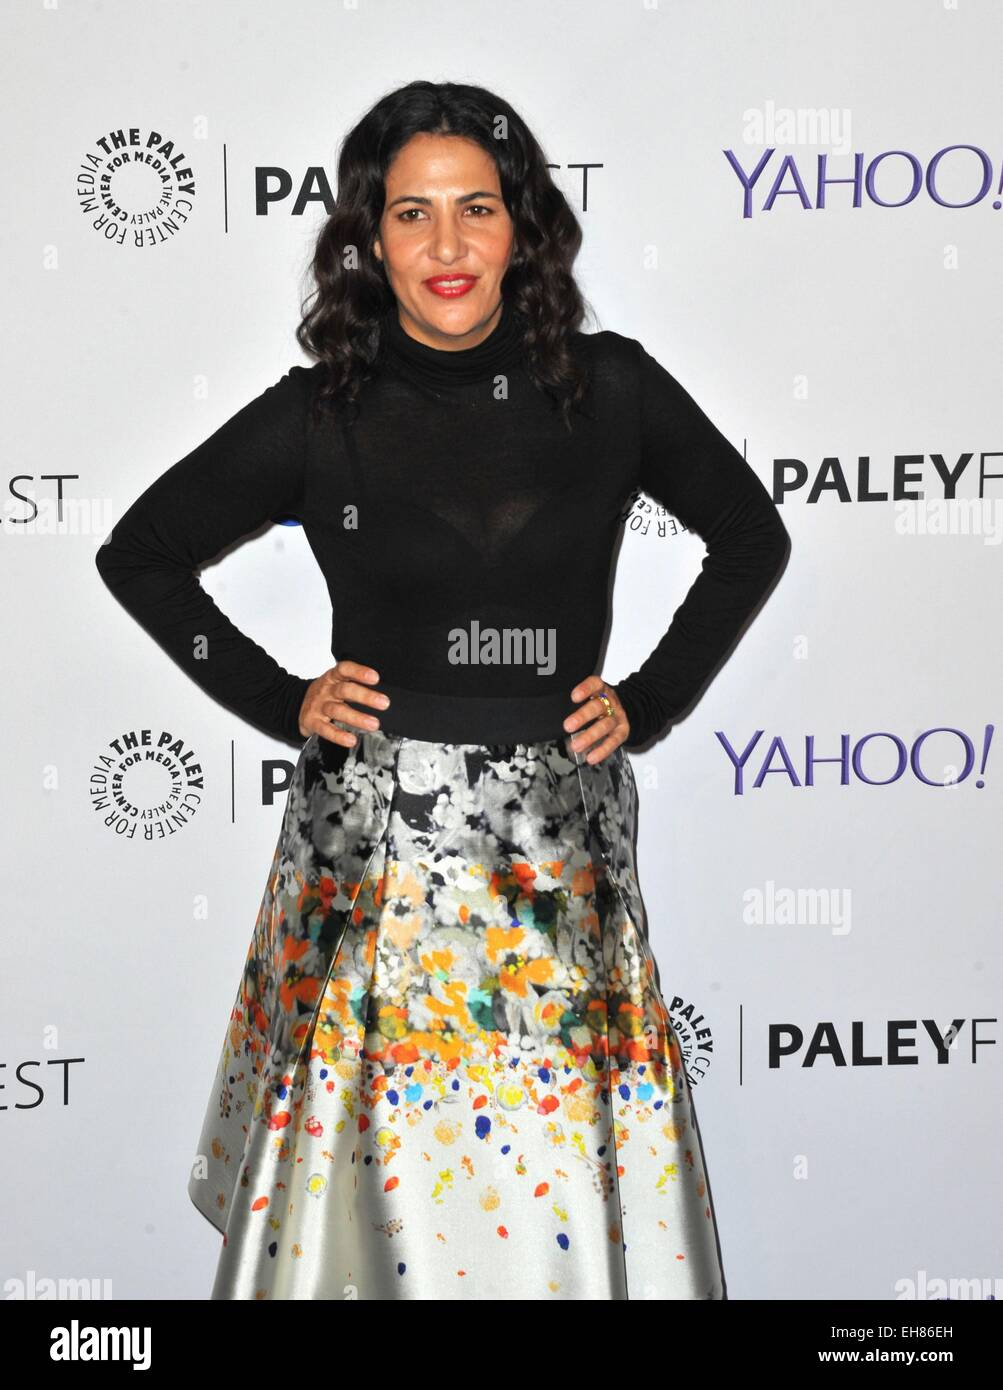 Los Angeles, CA, USA. 8th Mar, 2015. Jenni Kenner at arrivals for 32nd Annual PALEYFEST Honors HBO's GIRLS, - Stock Image